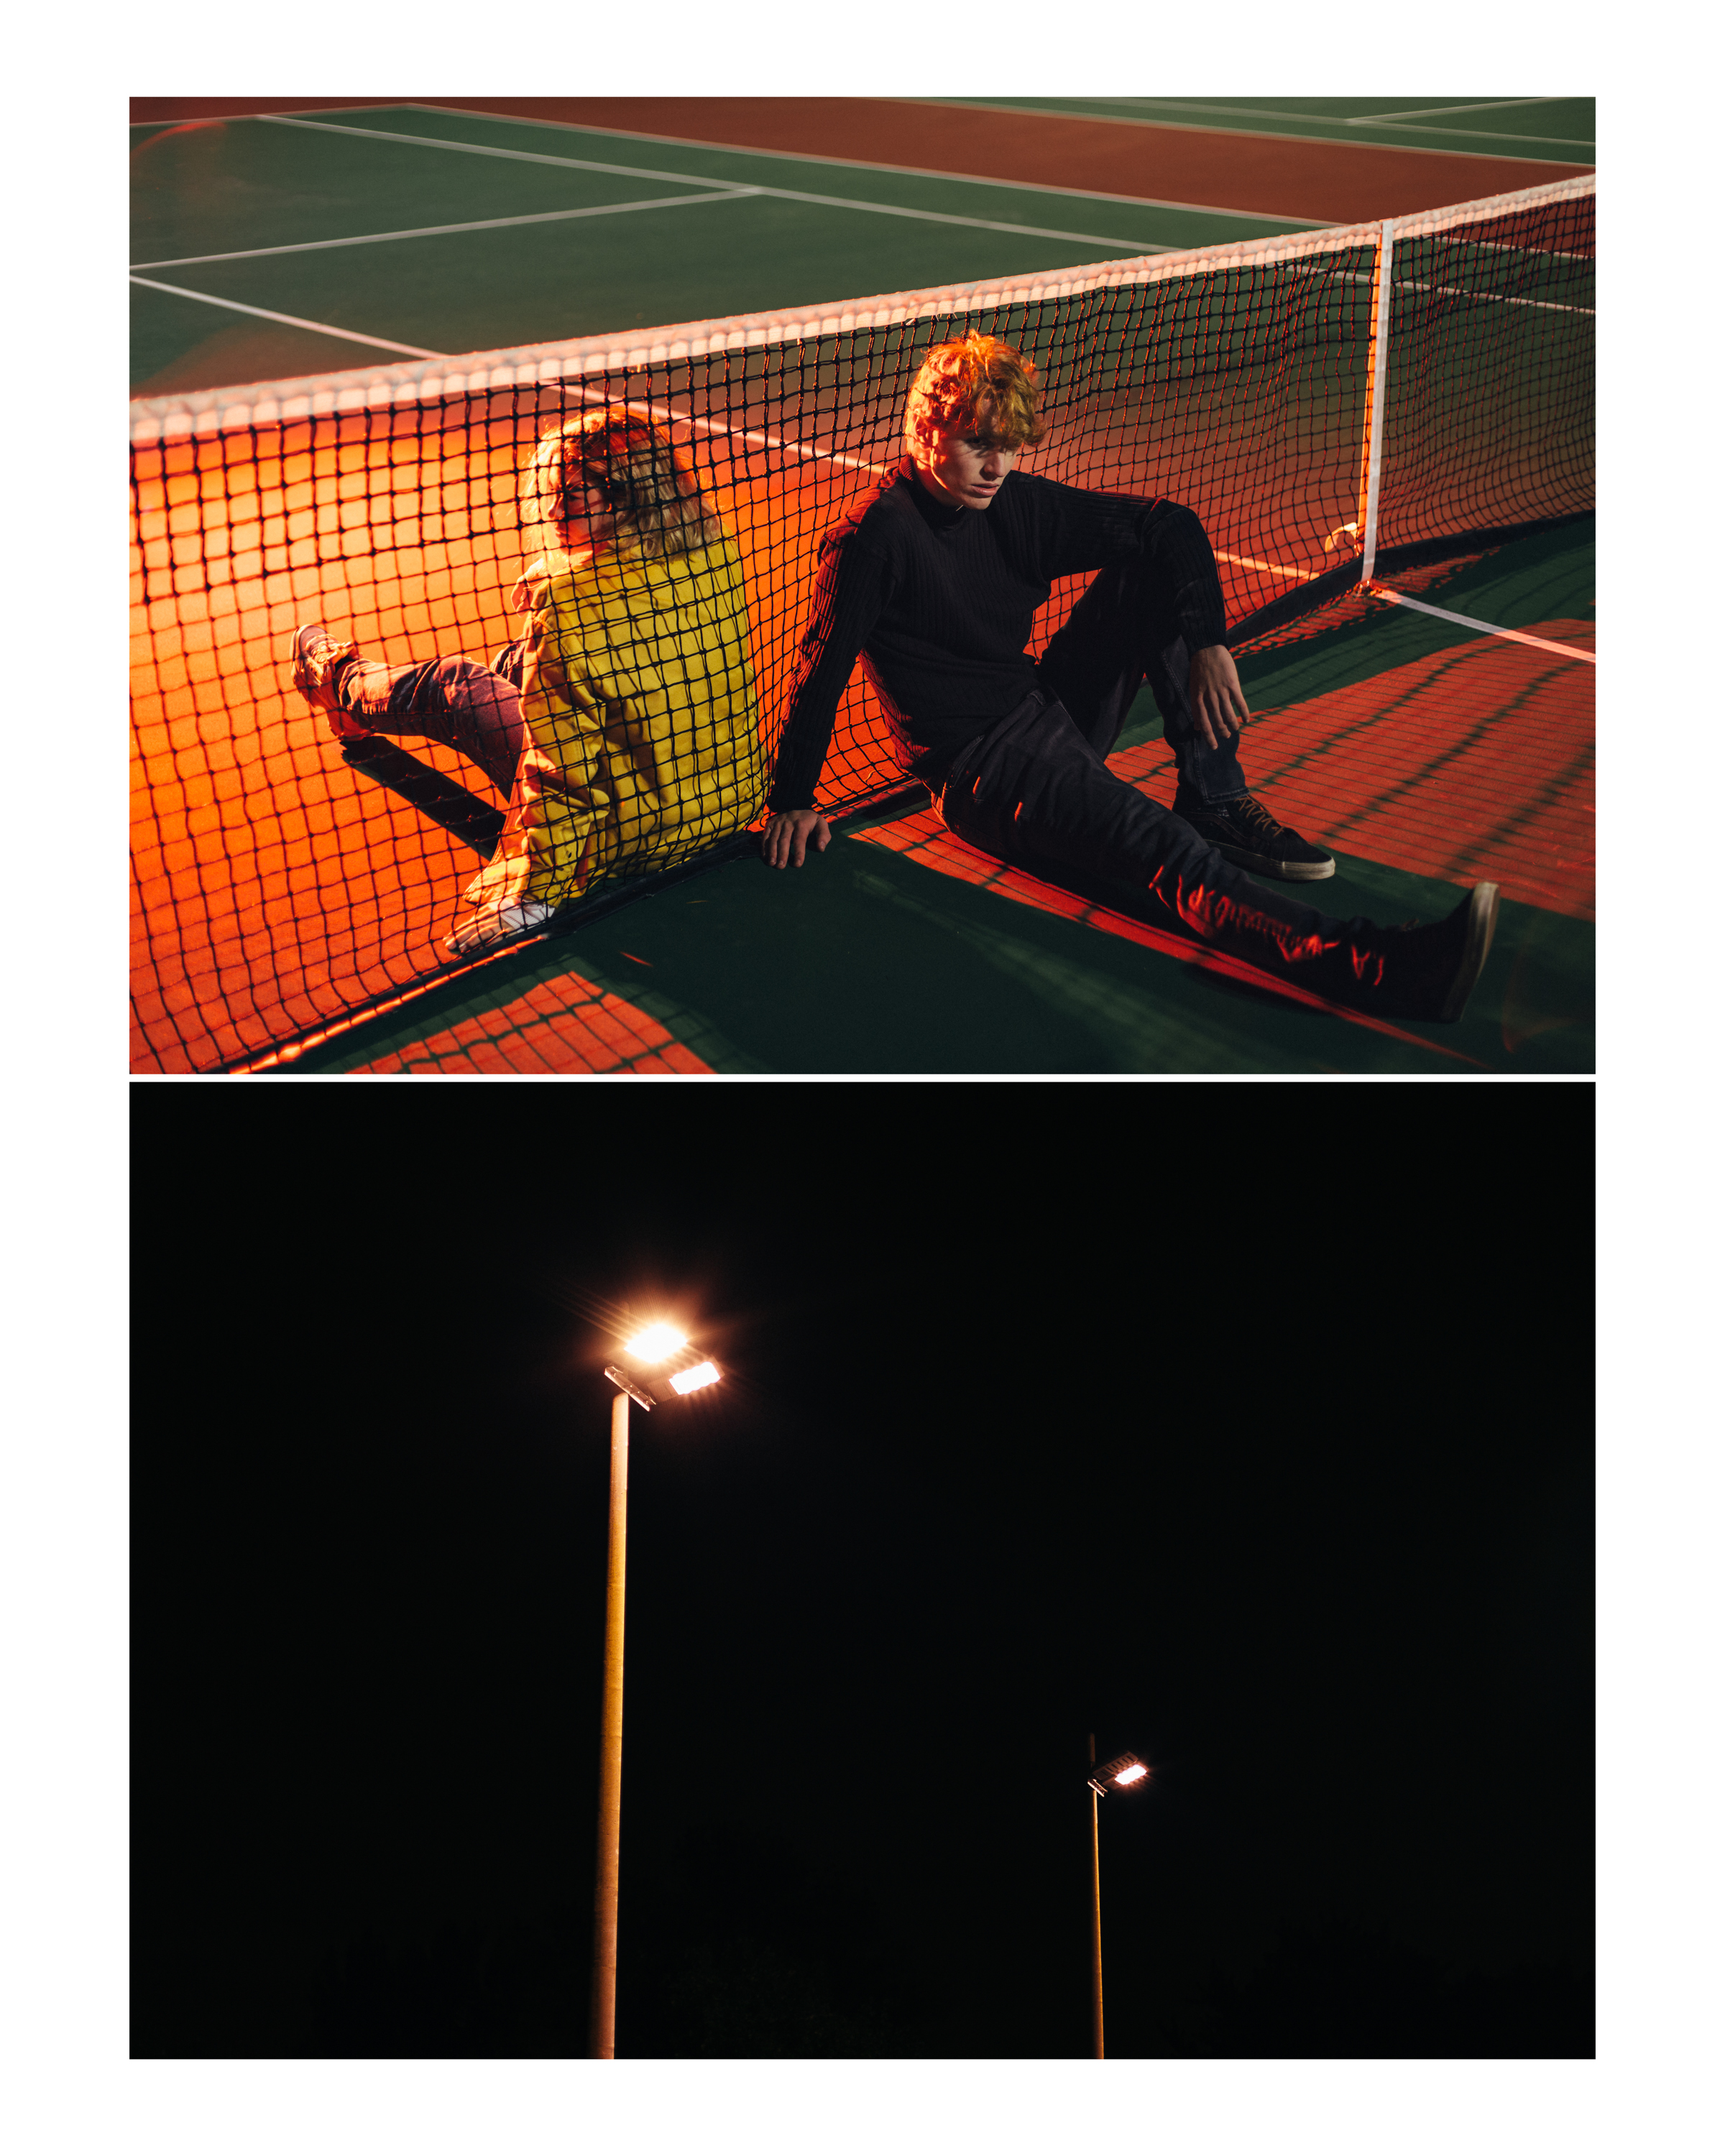 tennis court    Baby be the class clown I'll be the beauty queen in tears It's a new art form showing people how little we care We're so happy, even when we're smiling out of fear Let's go down to the tennis court, and talk it up like yeah